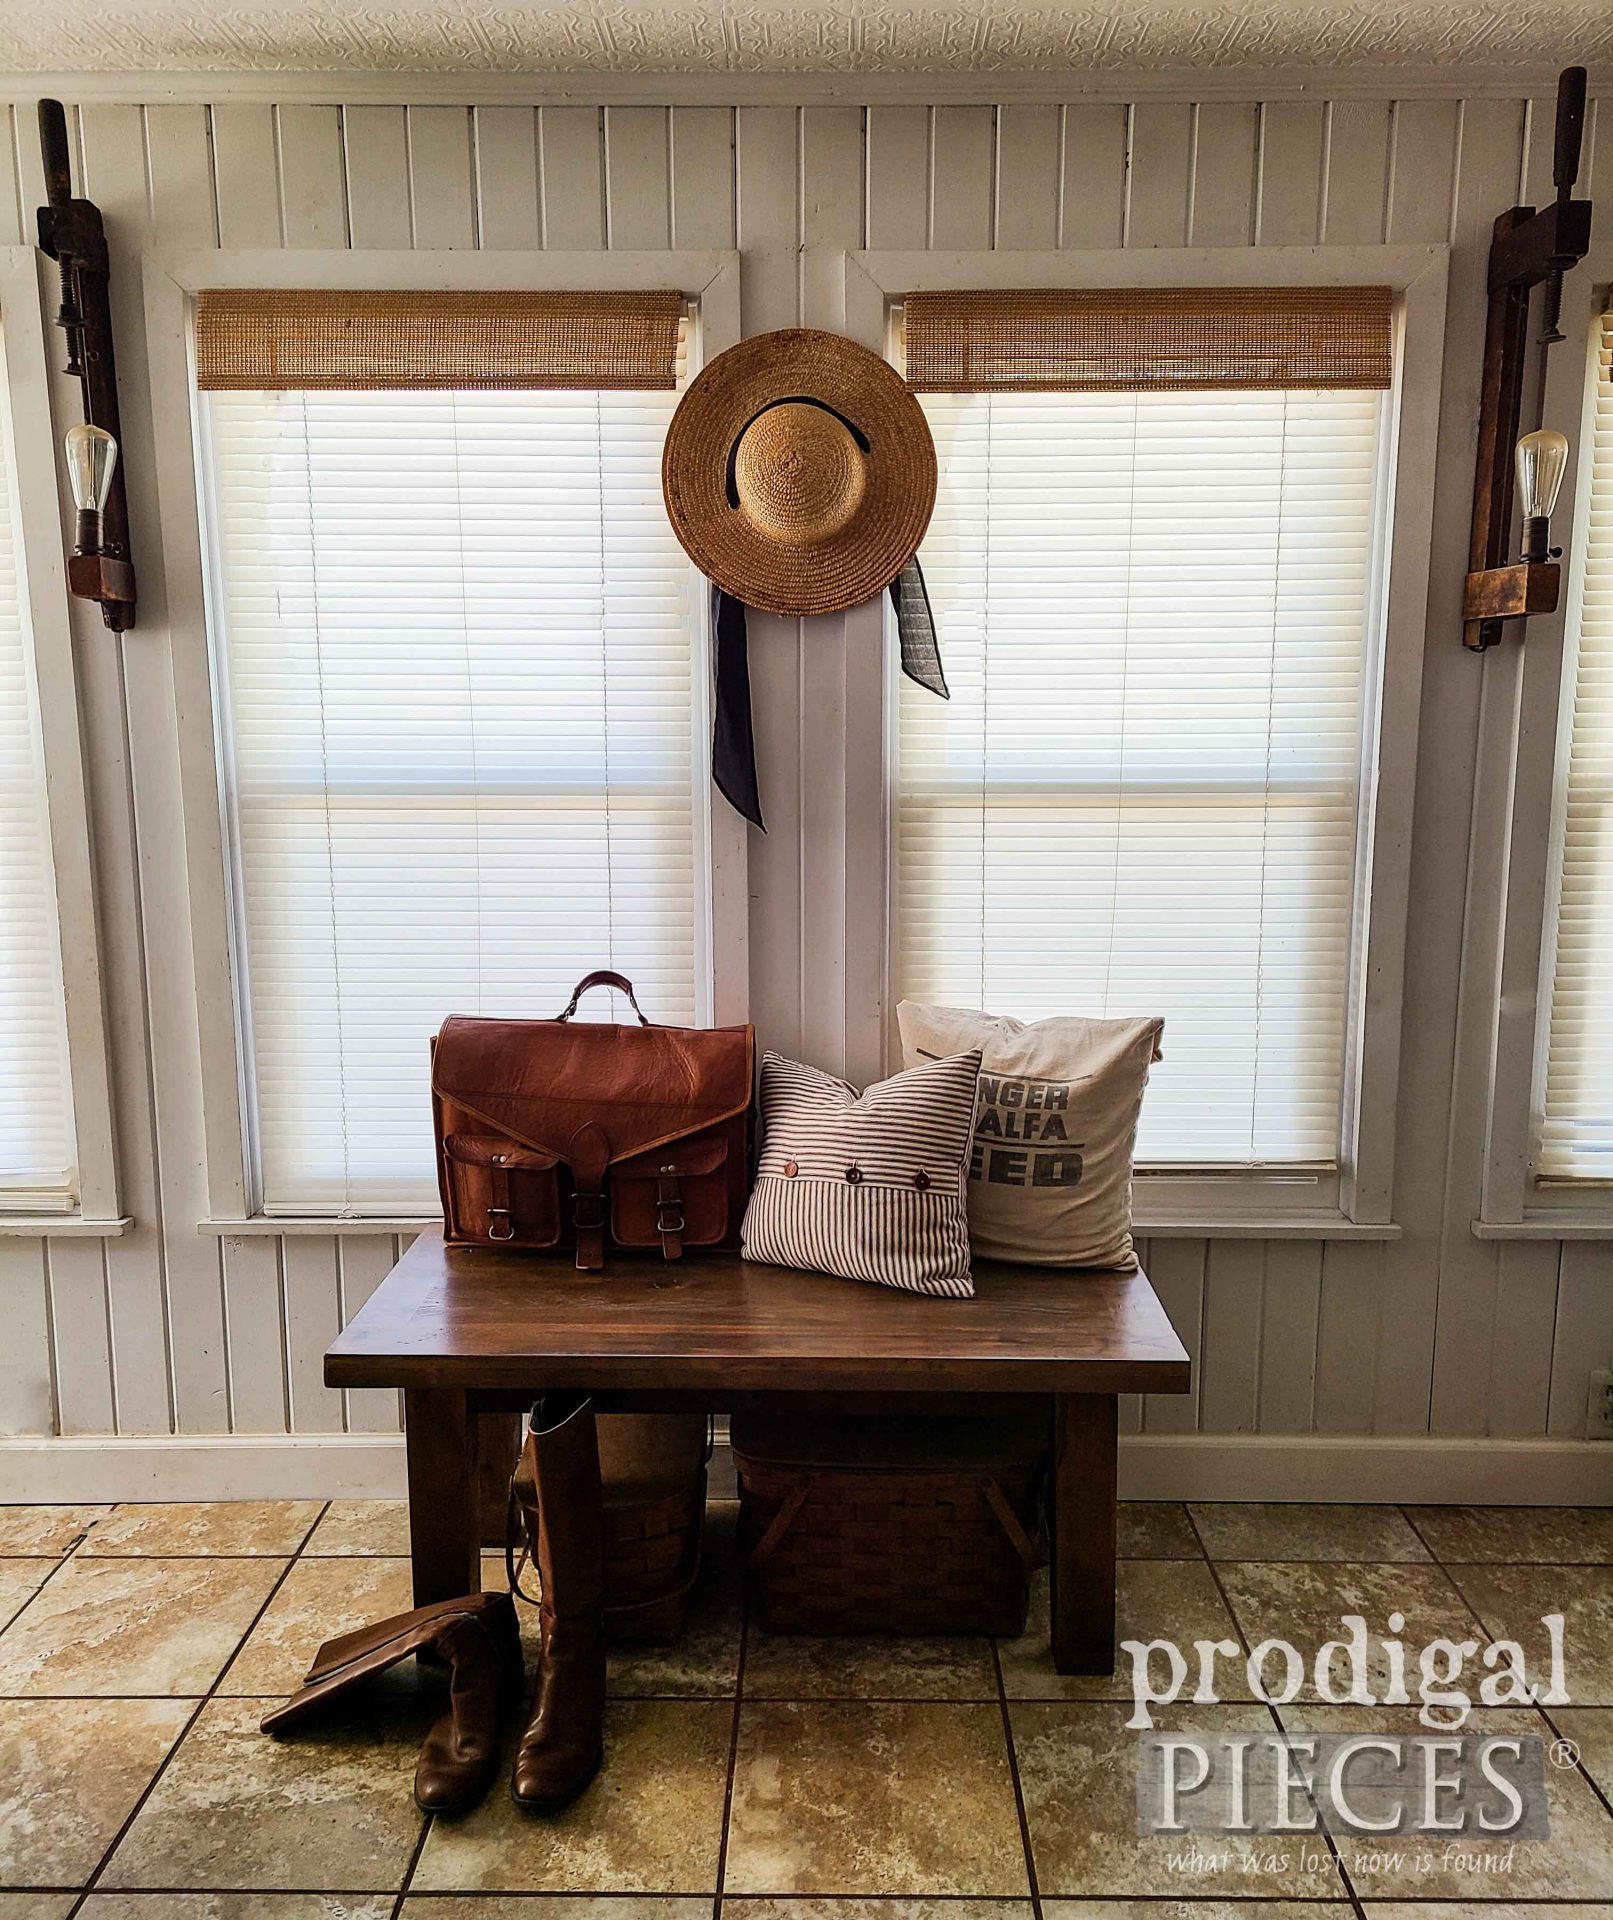 Rustic Farmhouse Entry Bench made from Reclaimed Materials by Larissa of Prodigal Pieces   prodigalpieces.com #prodigalpieces #furniture #reclaimed #farmhouse #home #homedecor